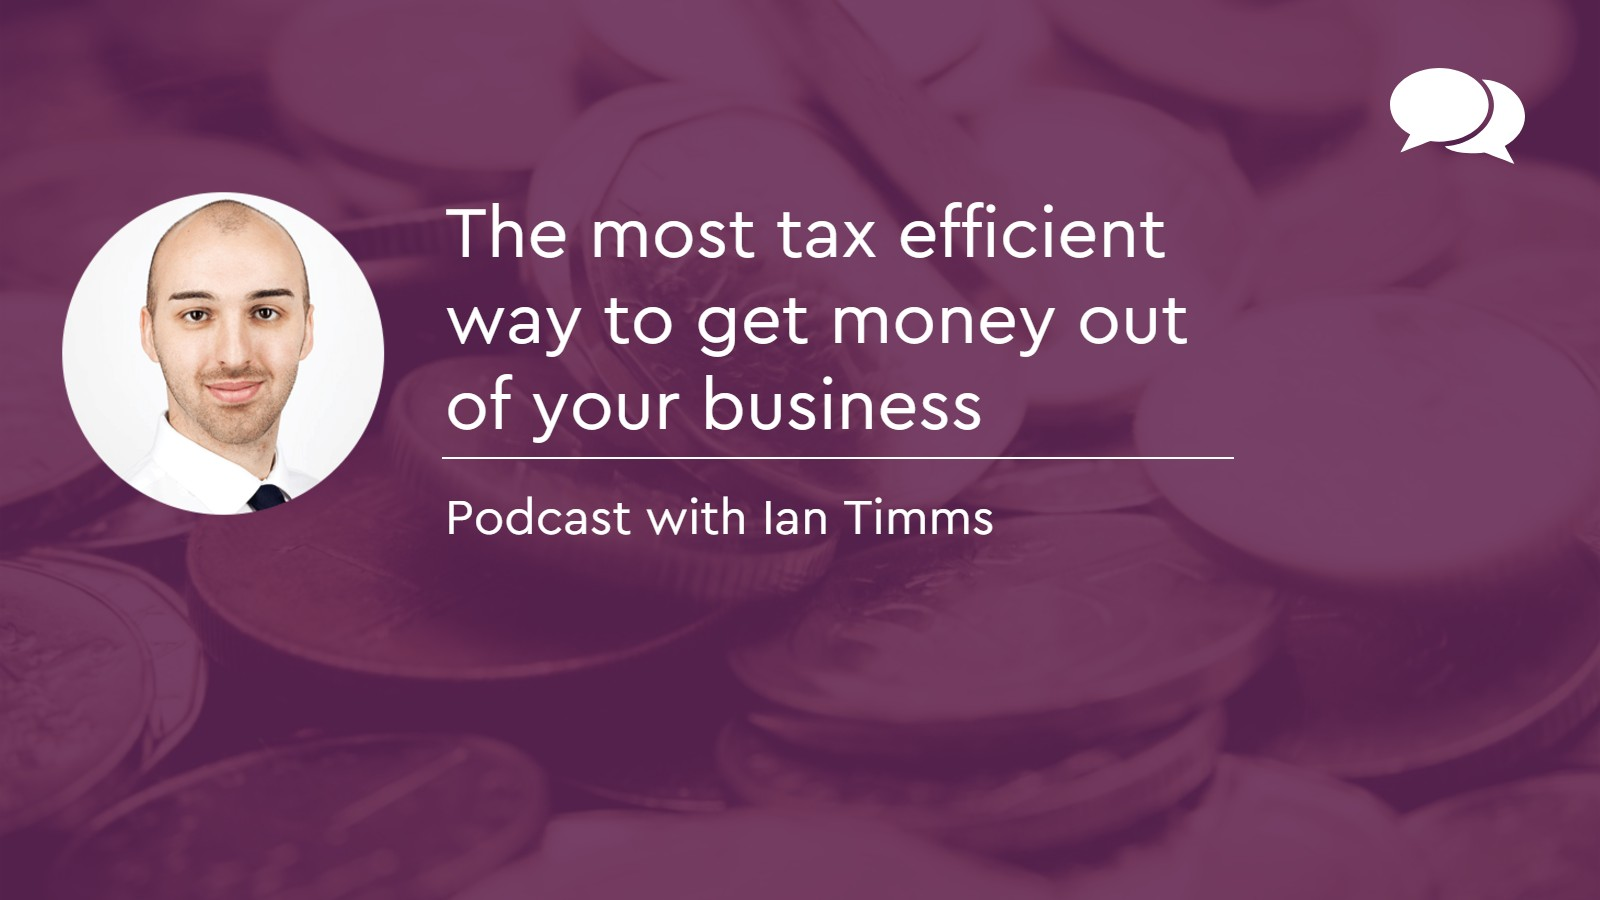 The most tax efficient way to get money out of your business